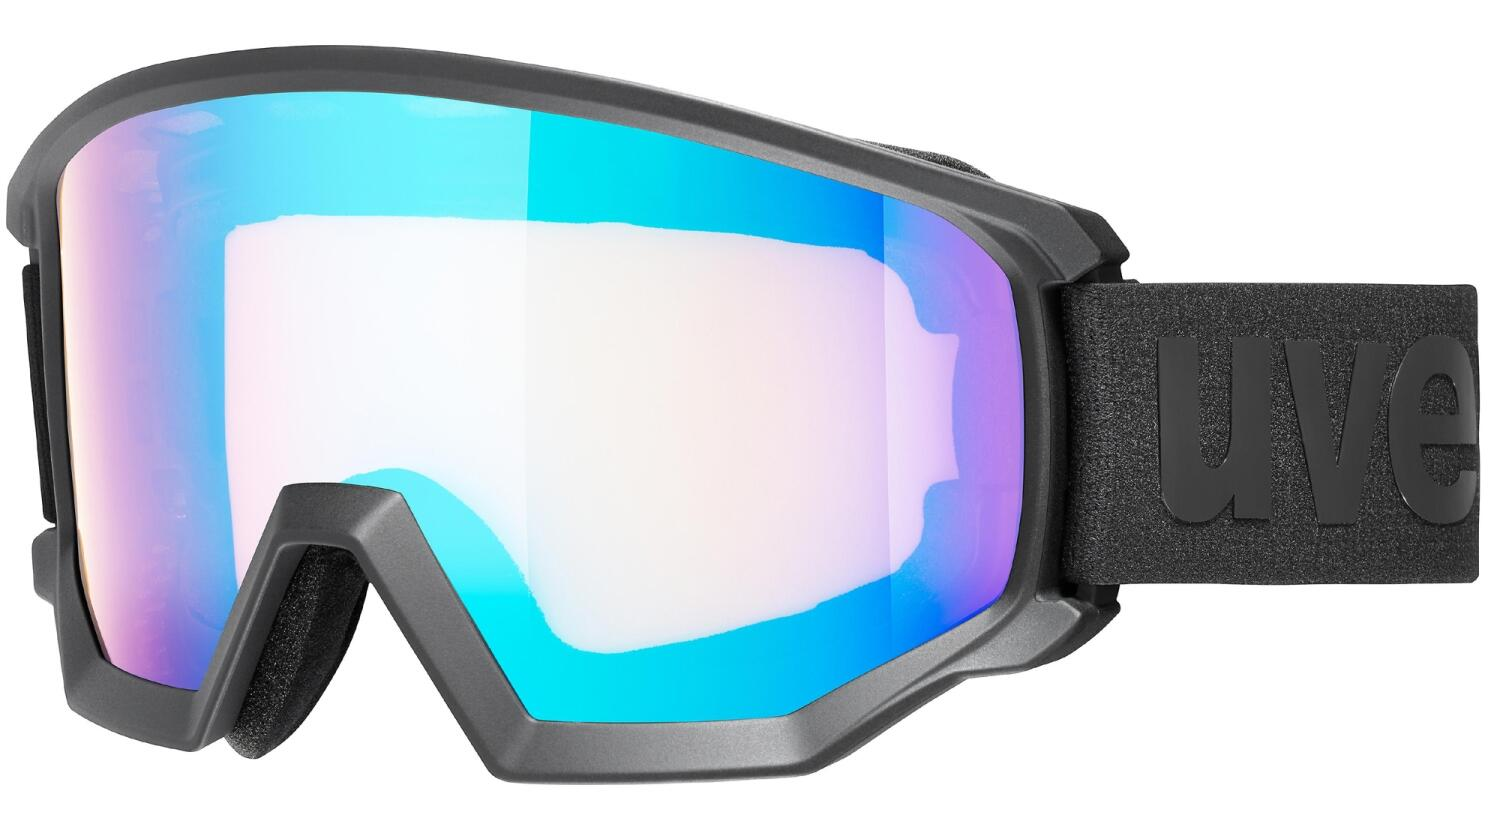 uvex-athletic-cv-skibrille-brillentr-auml-ger-farbe-2130-black-mat-mirror-blue-colorvision-yellow